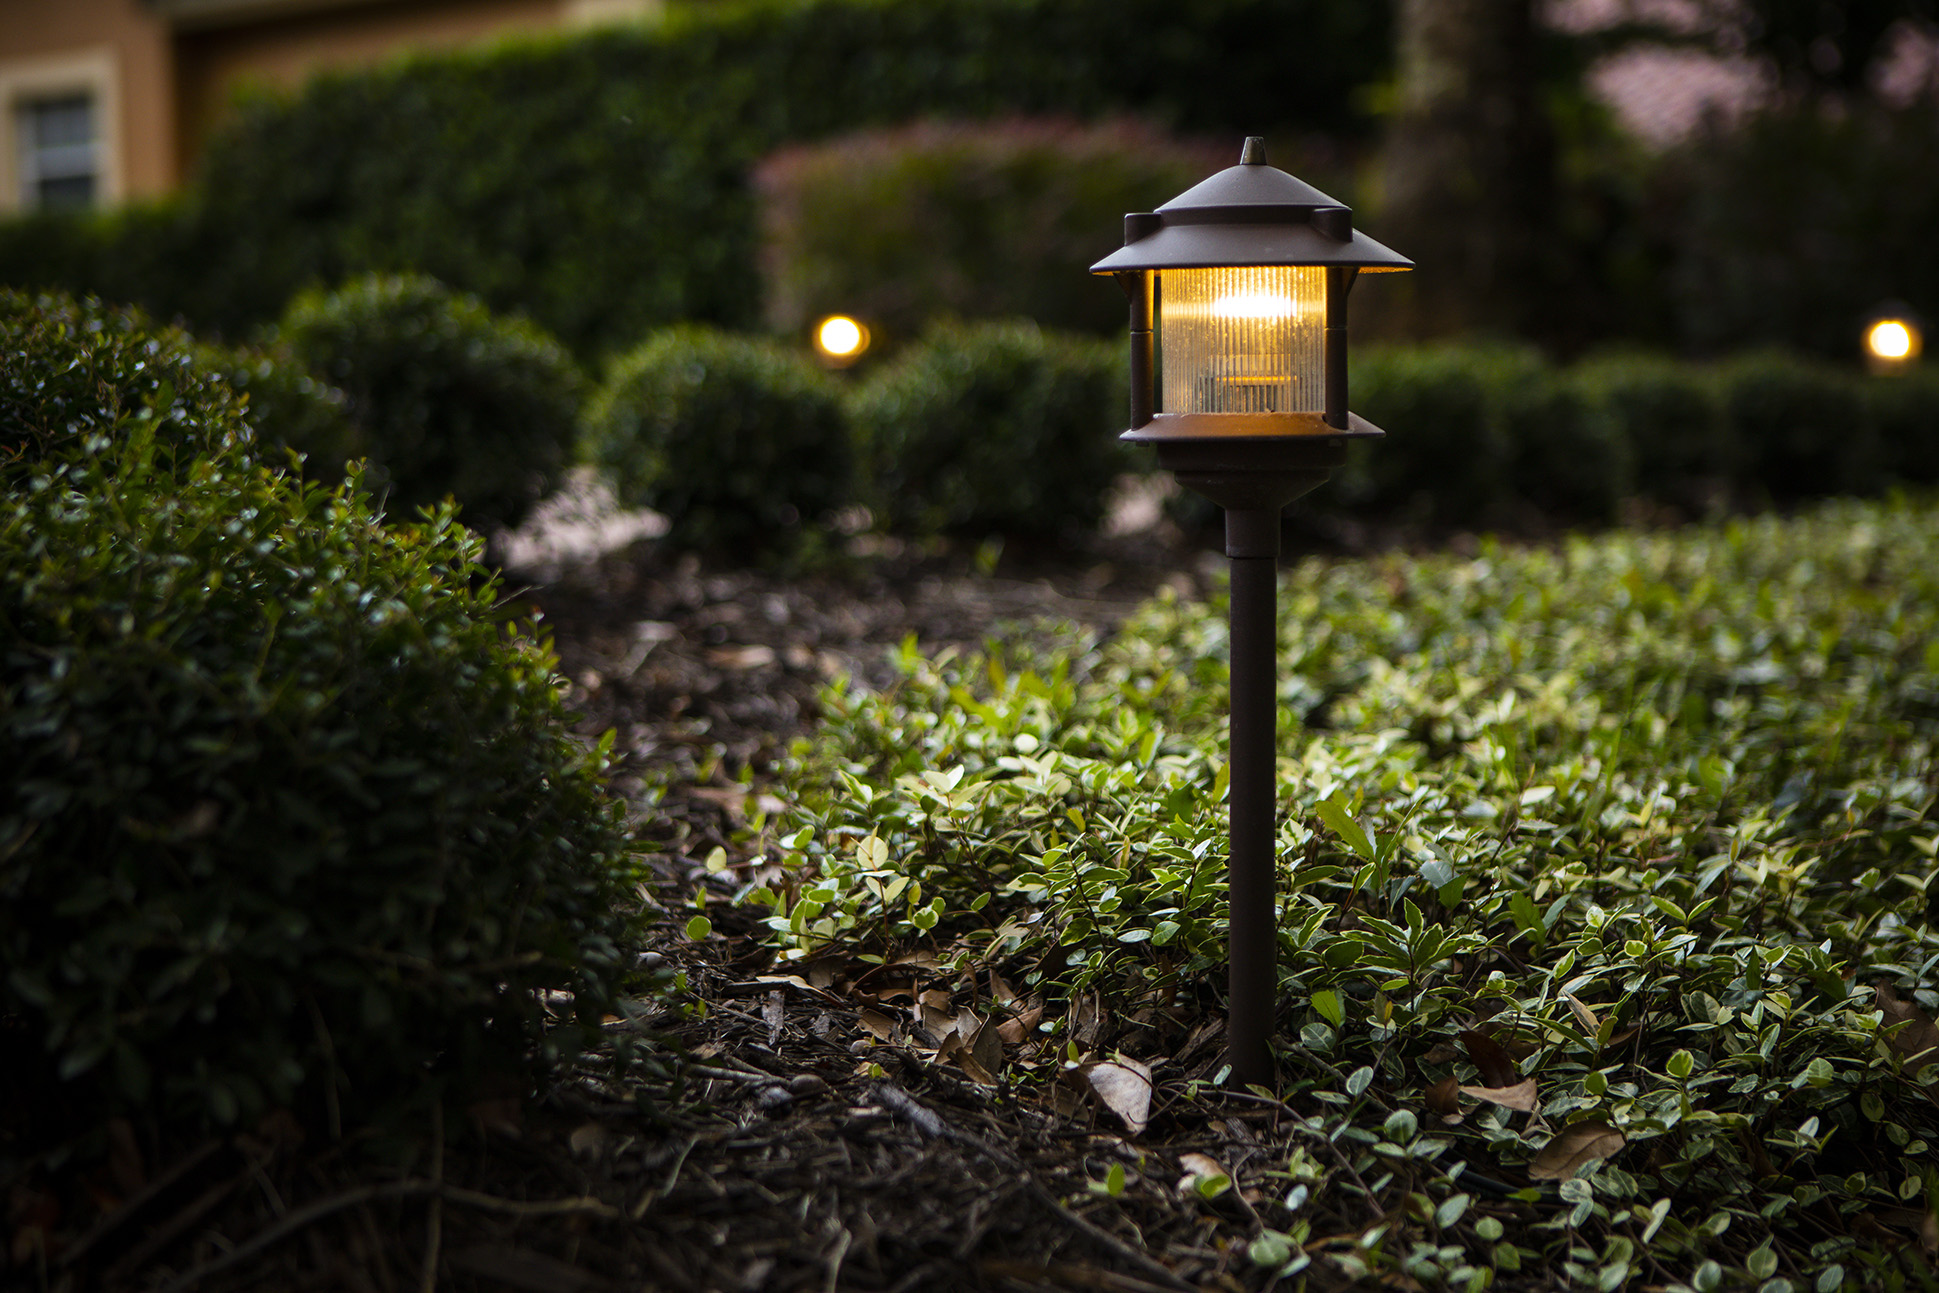 landscape lighting fixture with a cap to direct light down